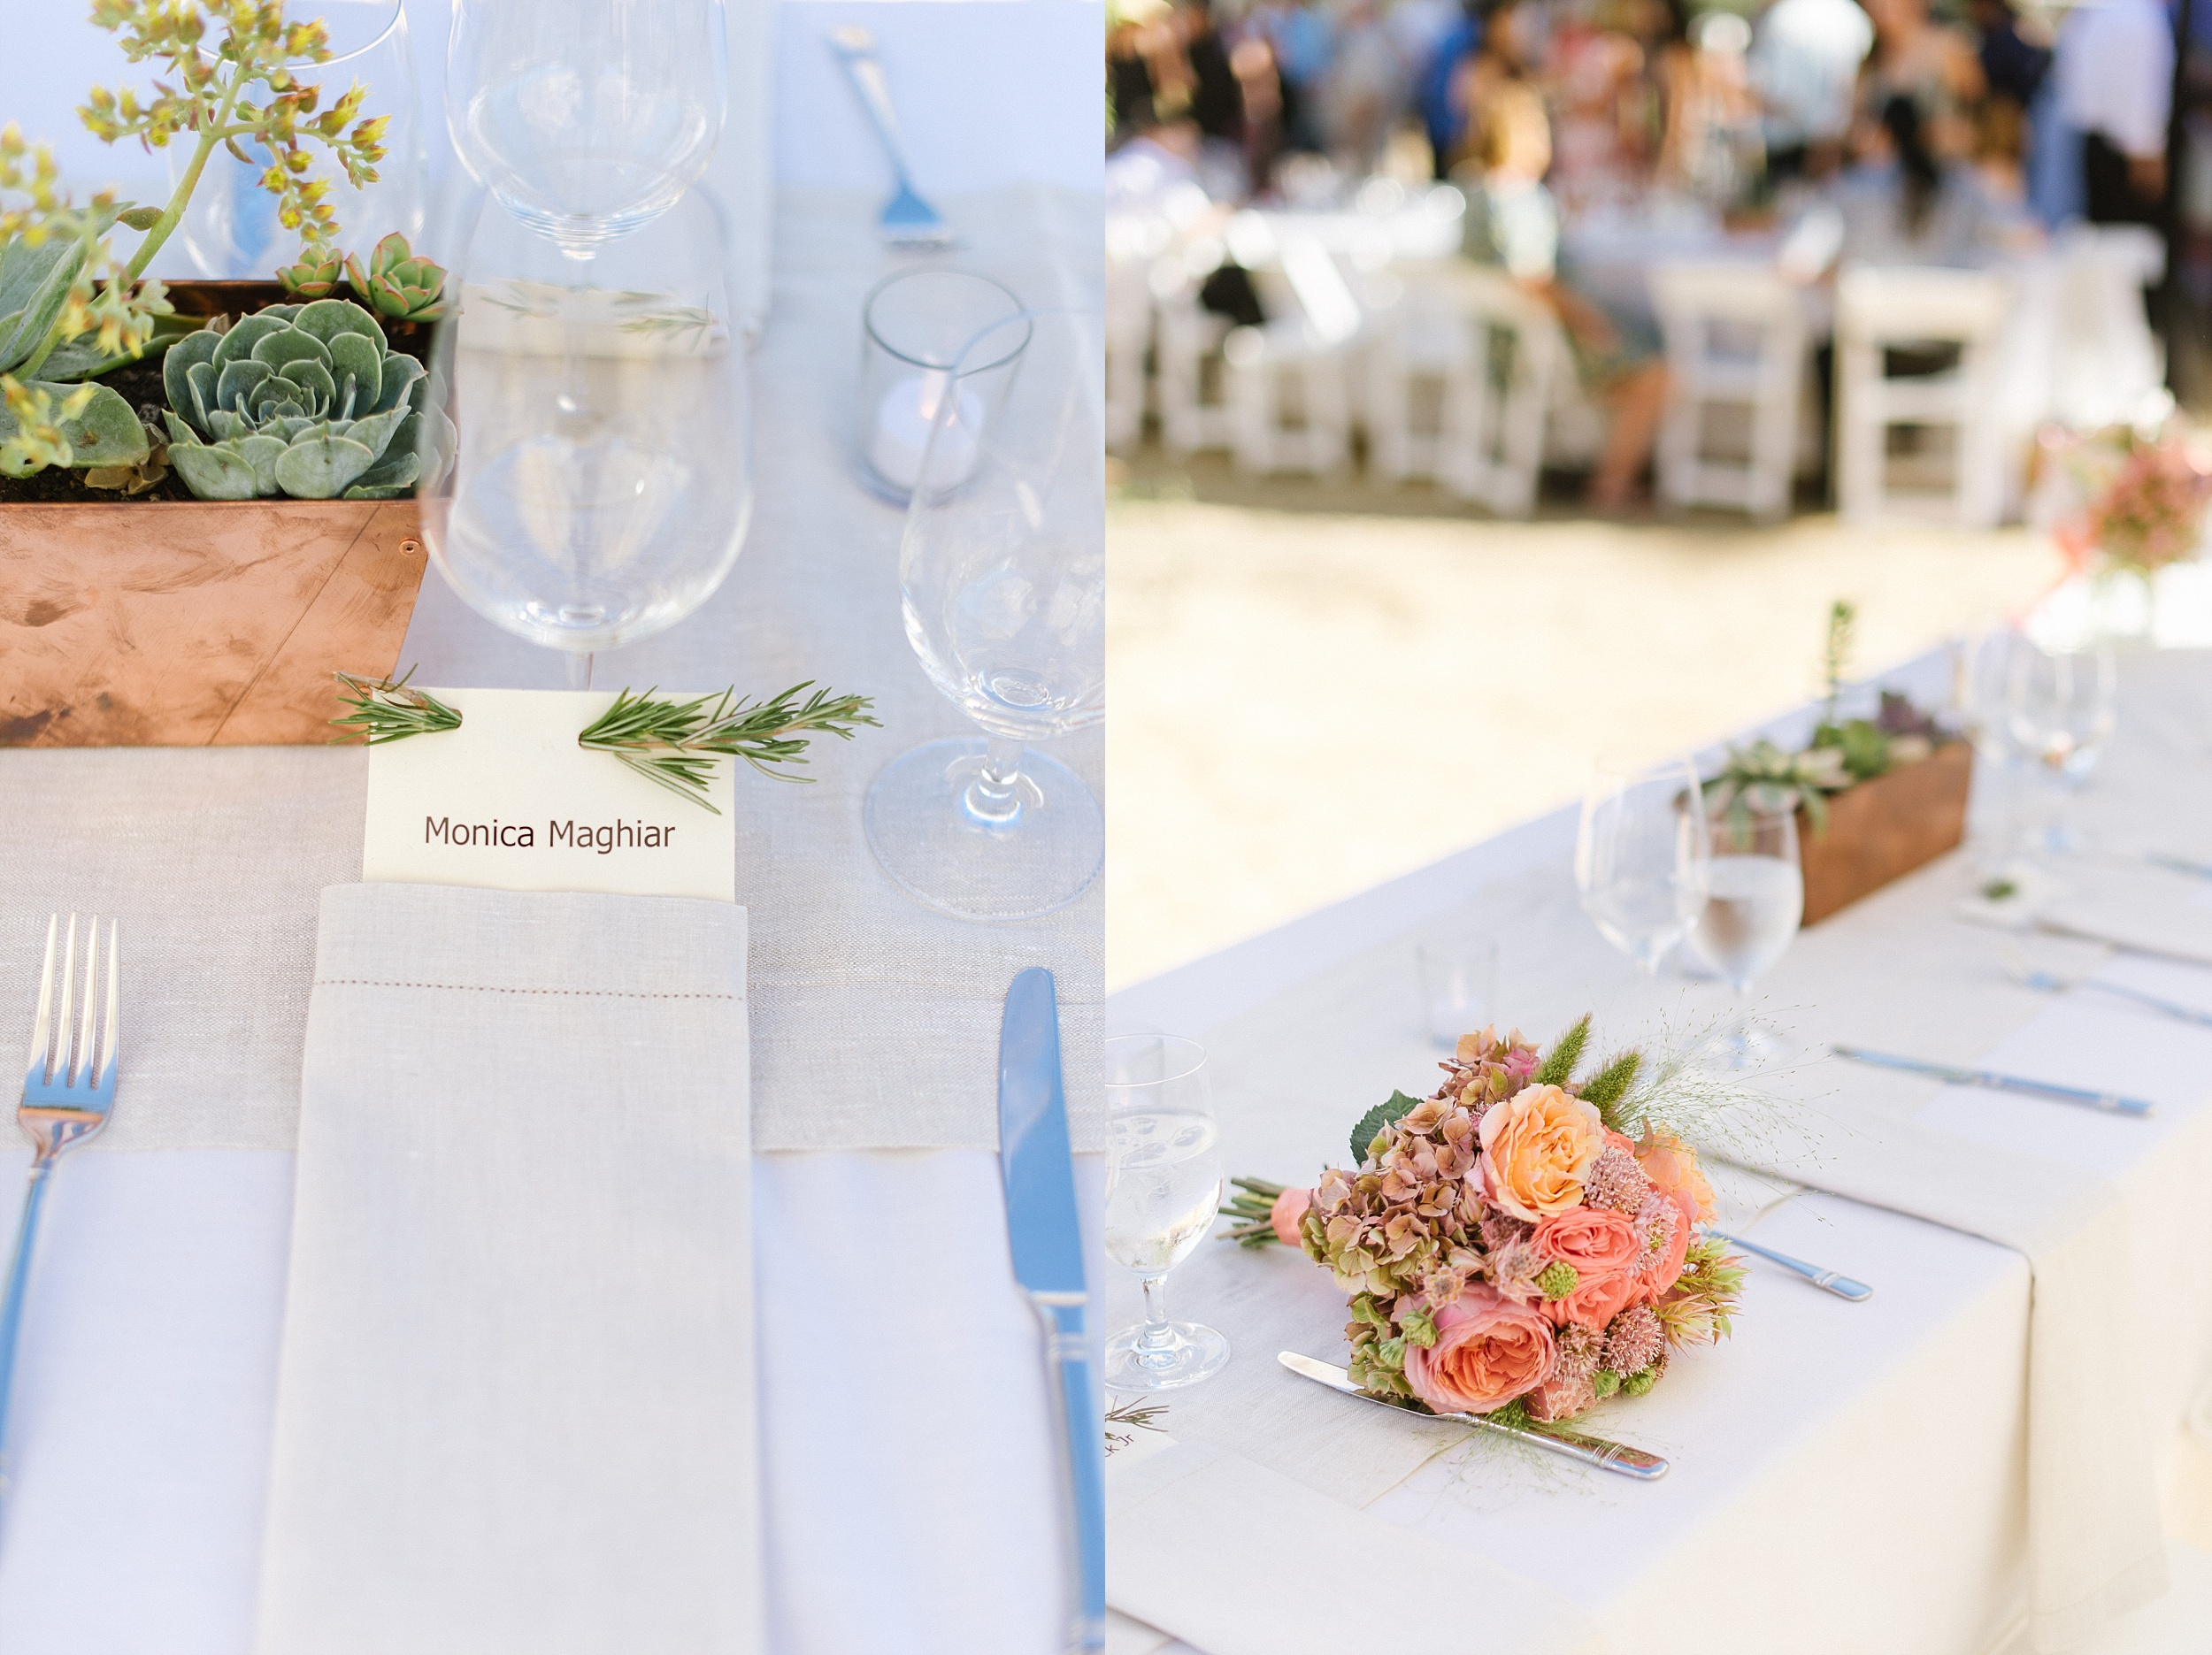 fairfax_ranch_wedding_chelsea_dier_photography_0025.jpg